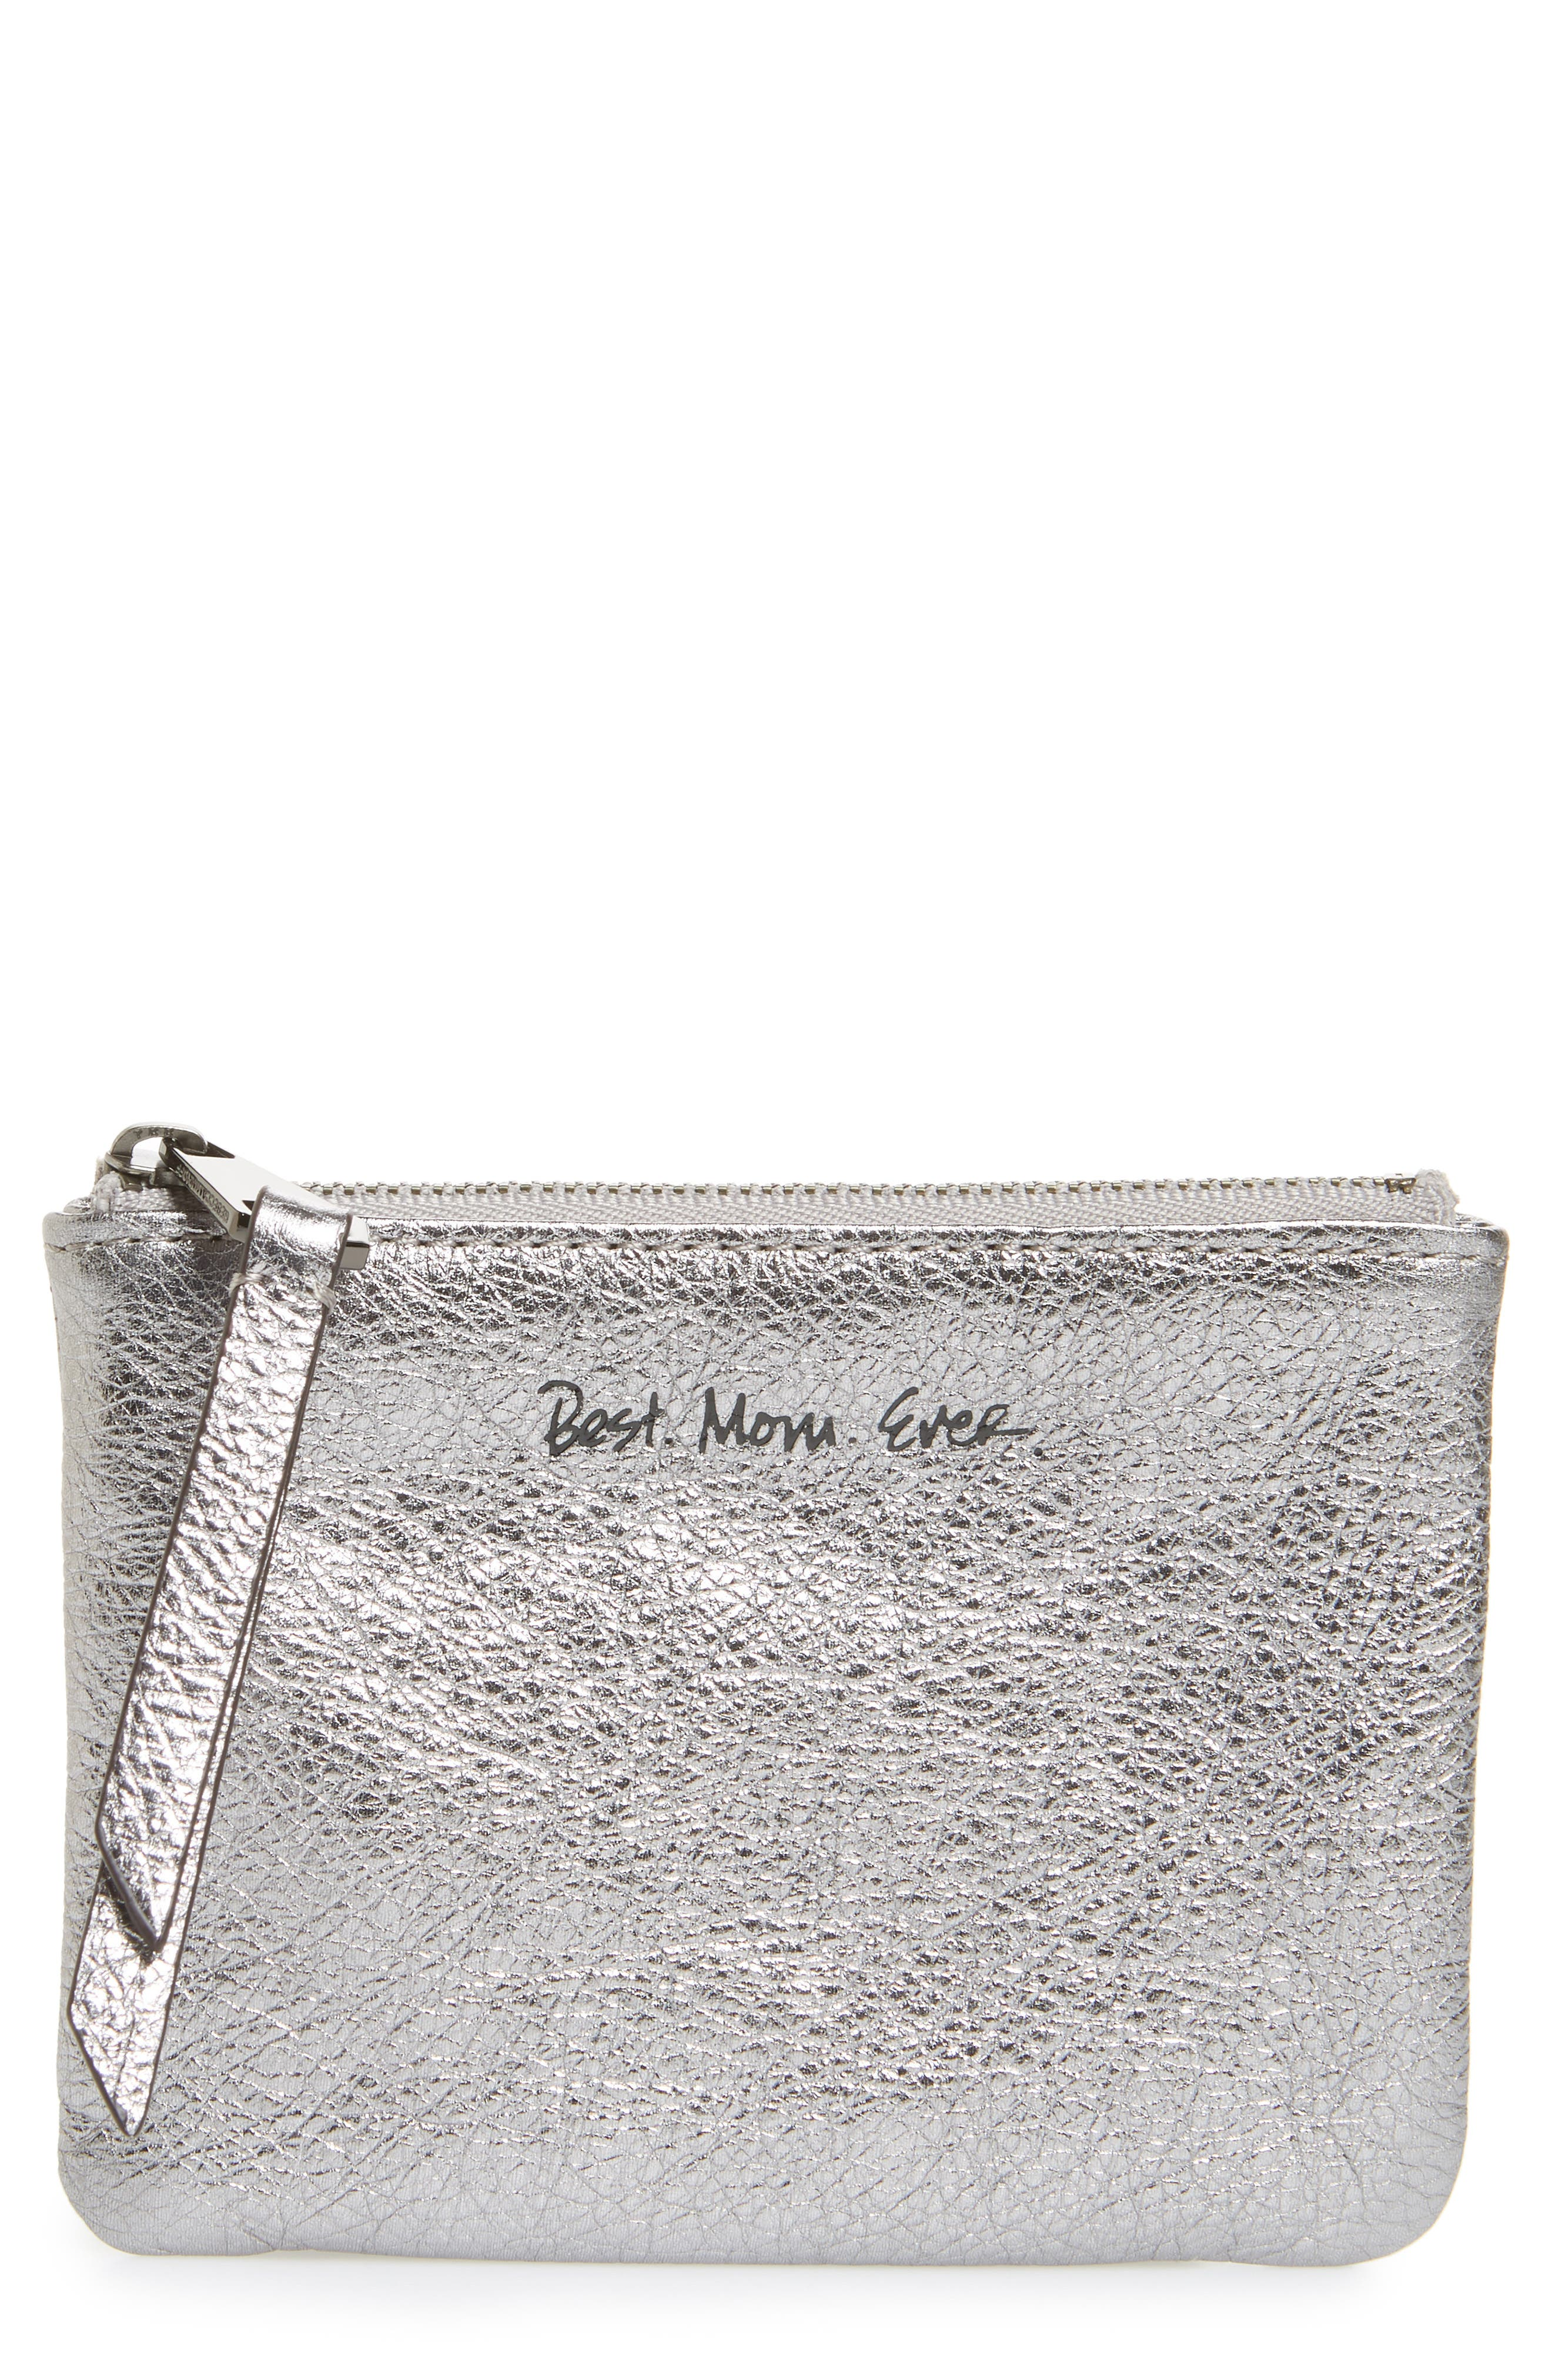 Betty - Best Mom Ever Leather Pouch,                             Main thumbnail 1, color,                             Anthracite